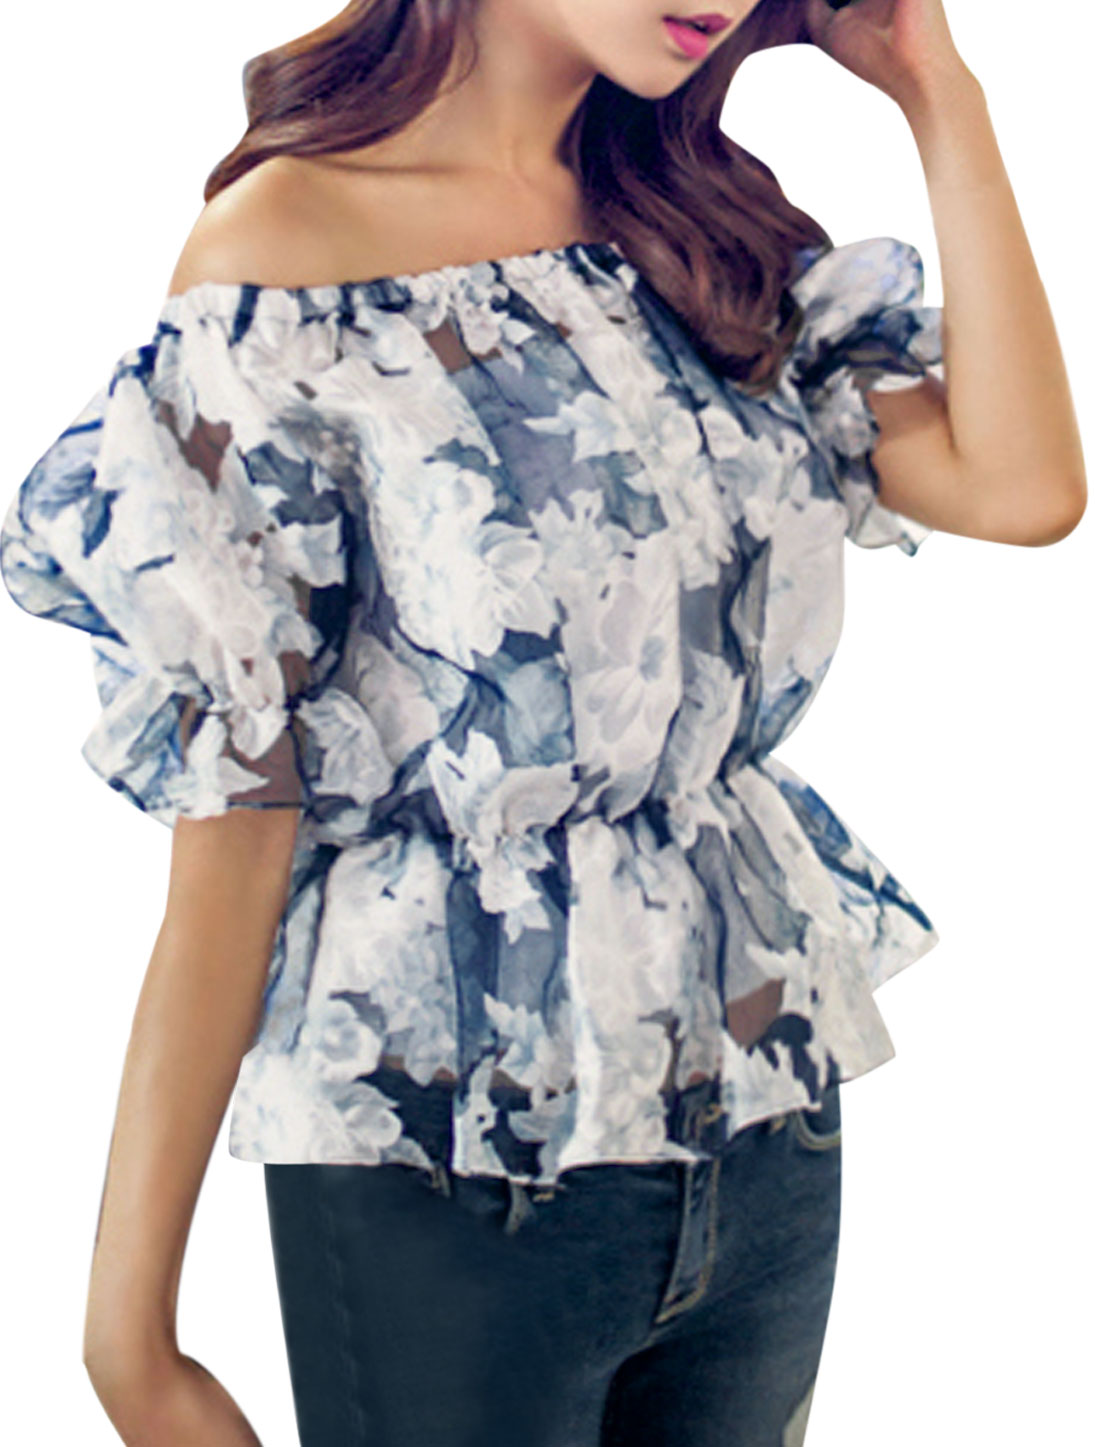 Lady Elastic Off Shoulder Floral Prints See Through Top White Dark Blue XS